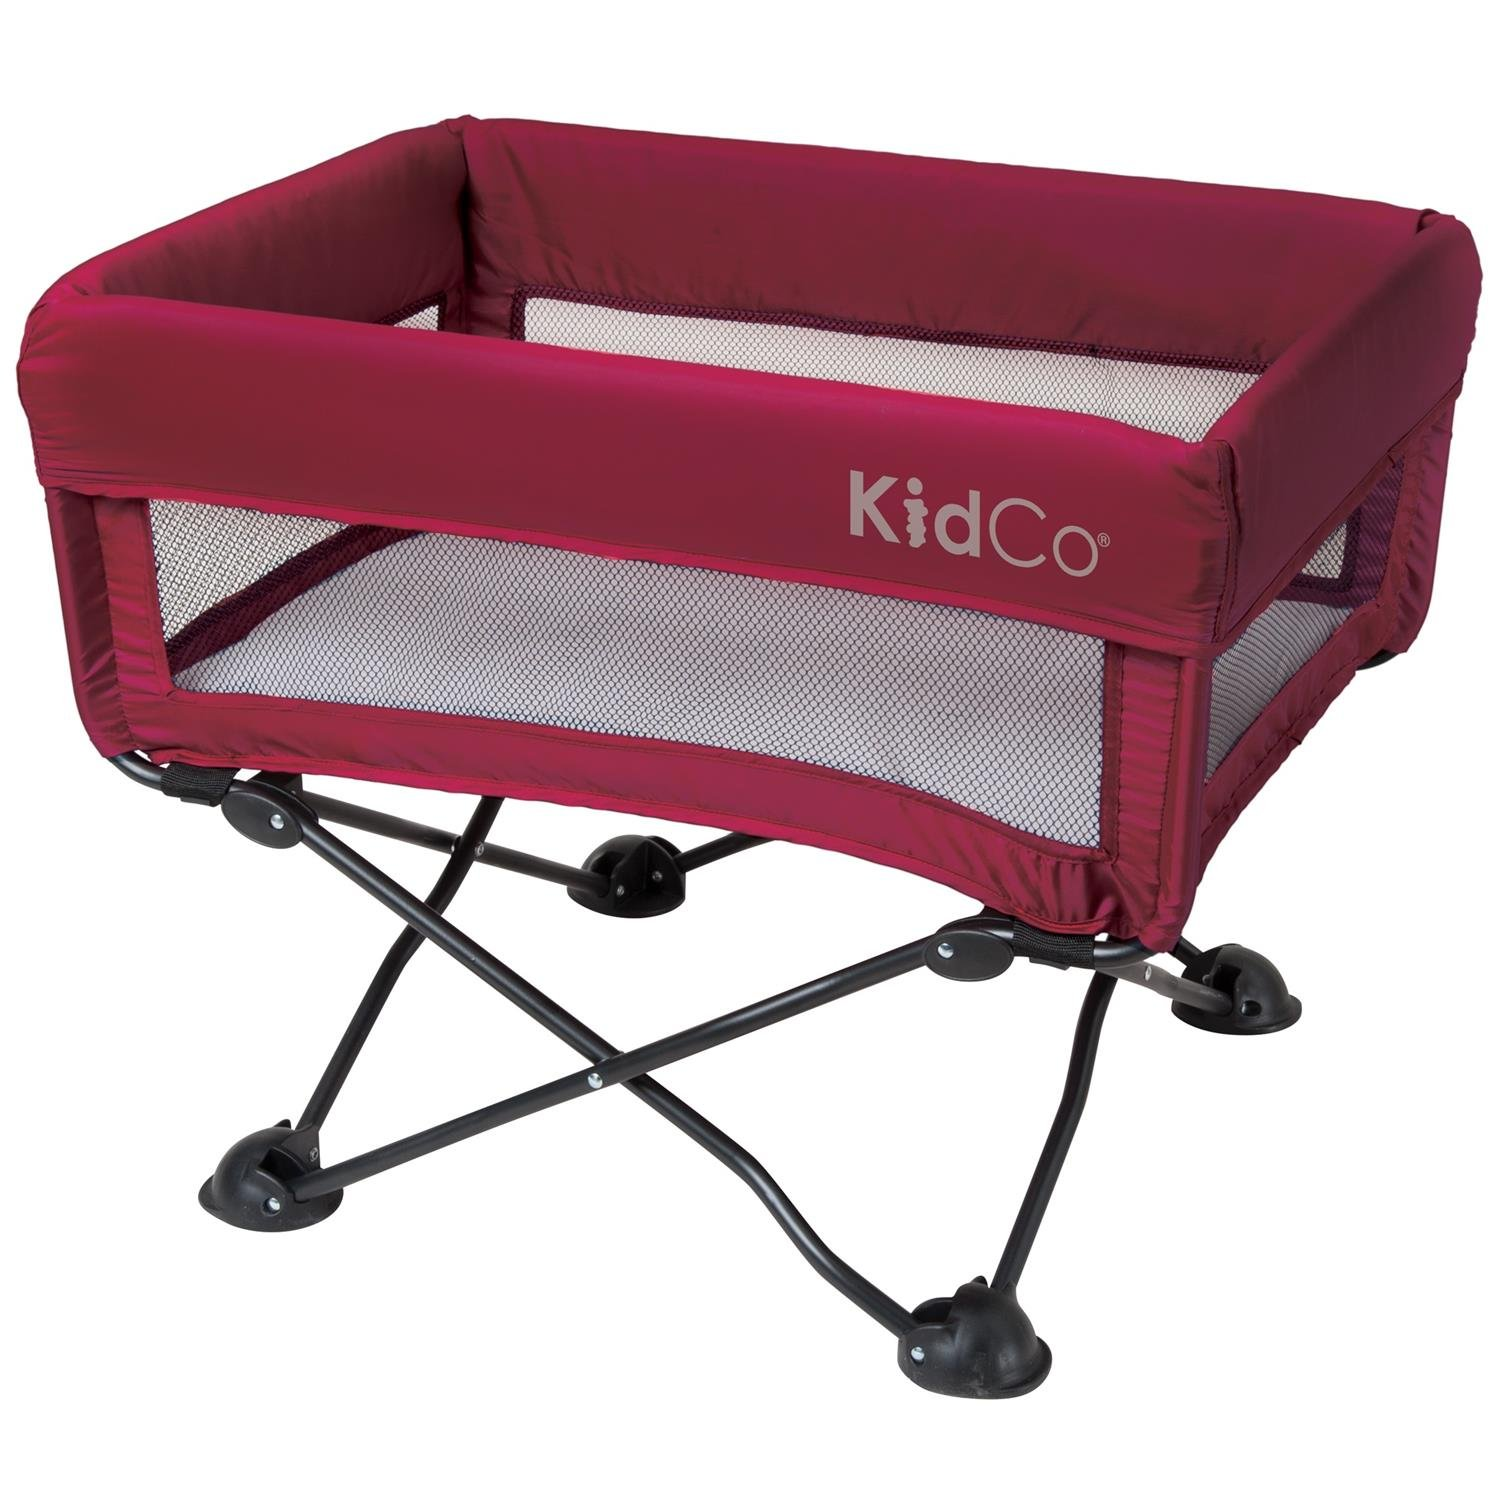 Kidco Dream Pod